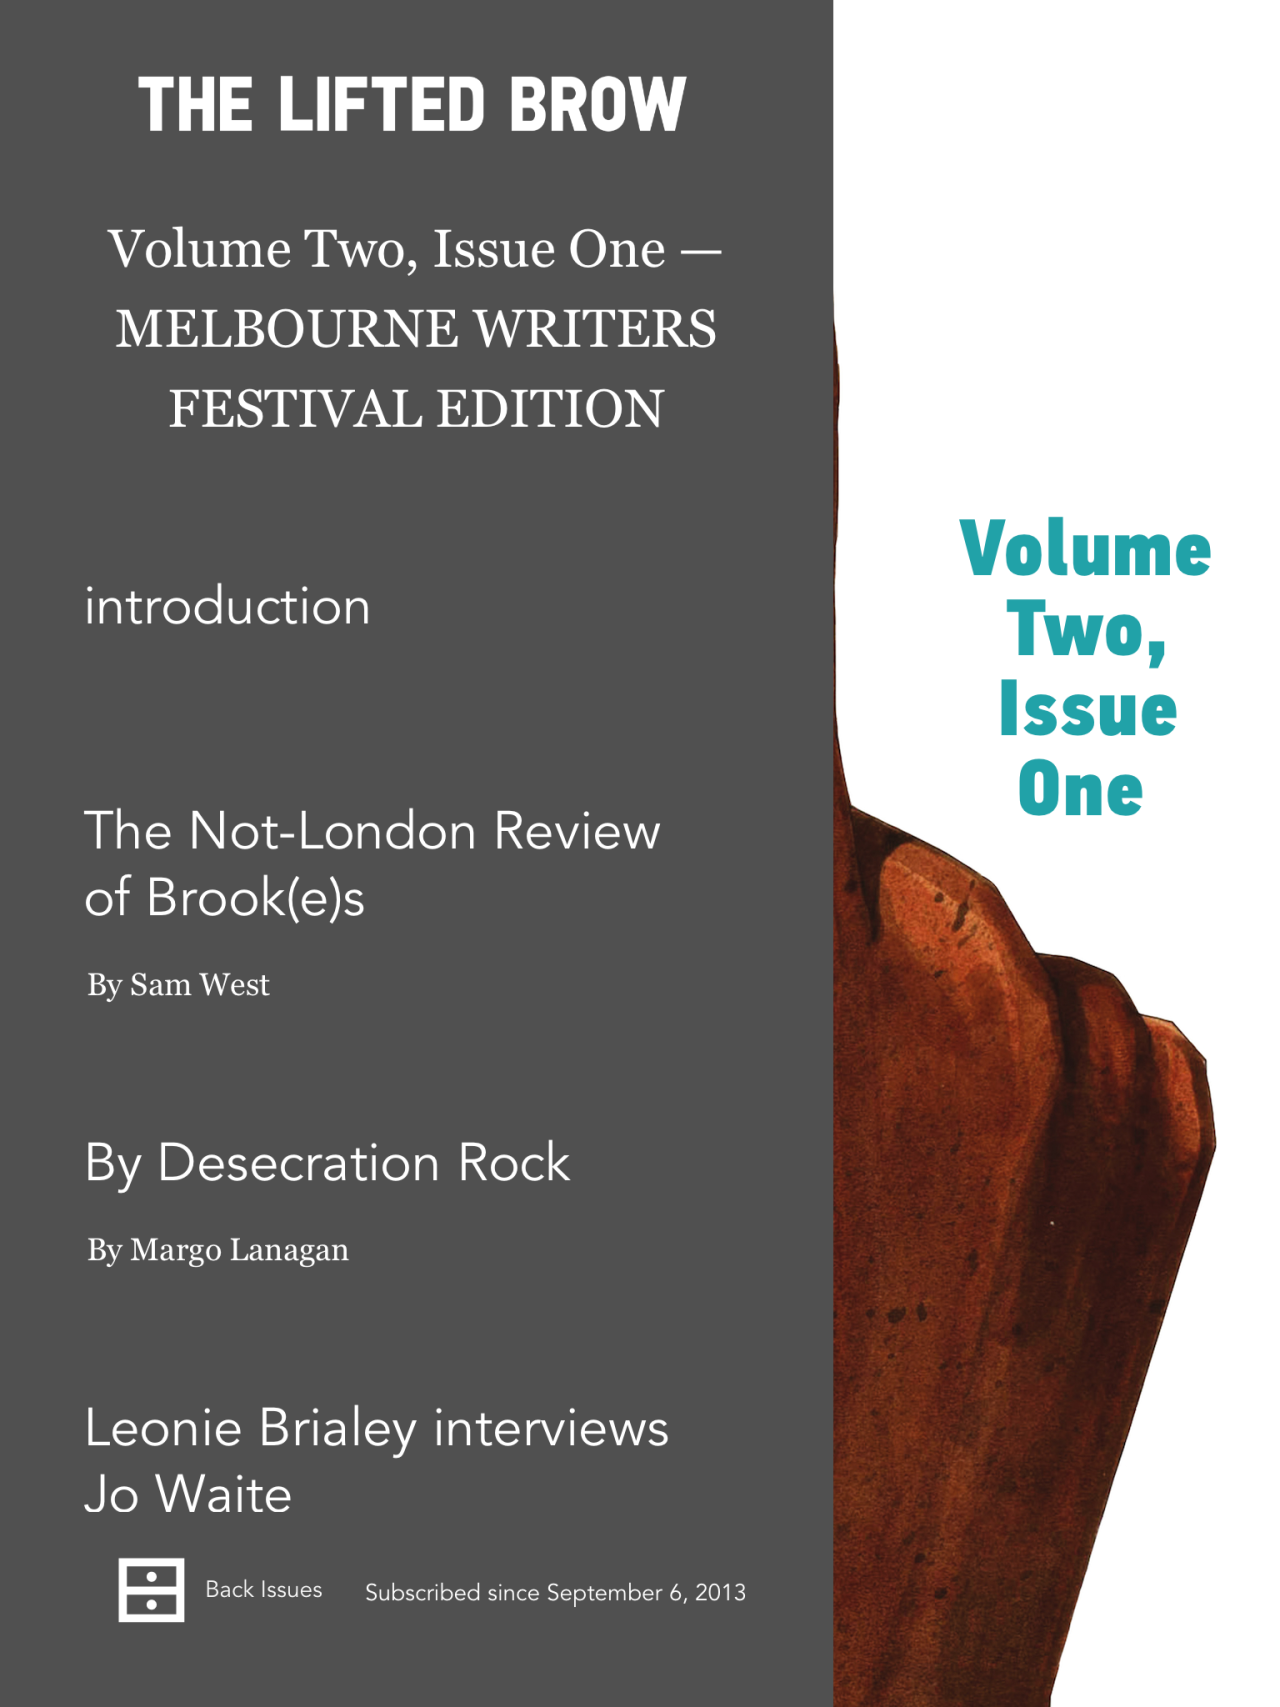 The new update of the digital Brow is here! If you're a subscriber then you've already received it; if you're not, then  what are you doing .   This edition features a pick of the pieces from our Melbourne Writers Festival themed print issue. It's ridiculously good stuff!